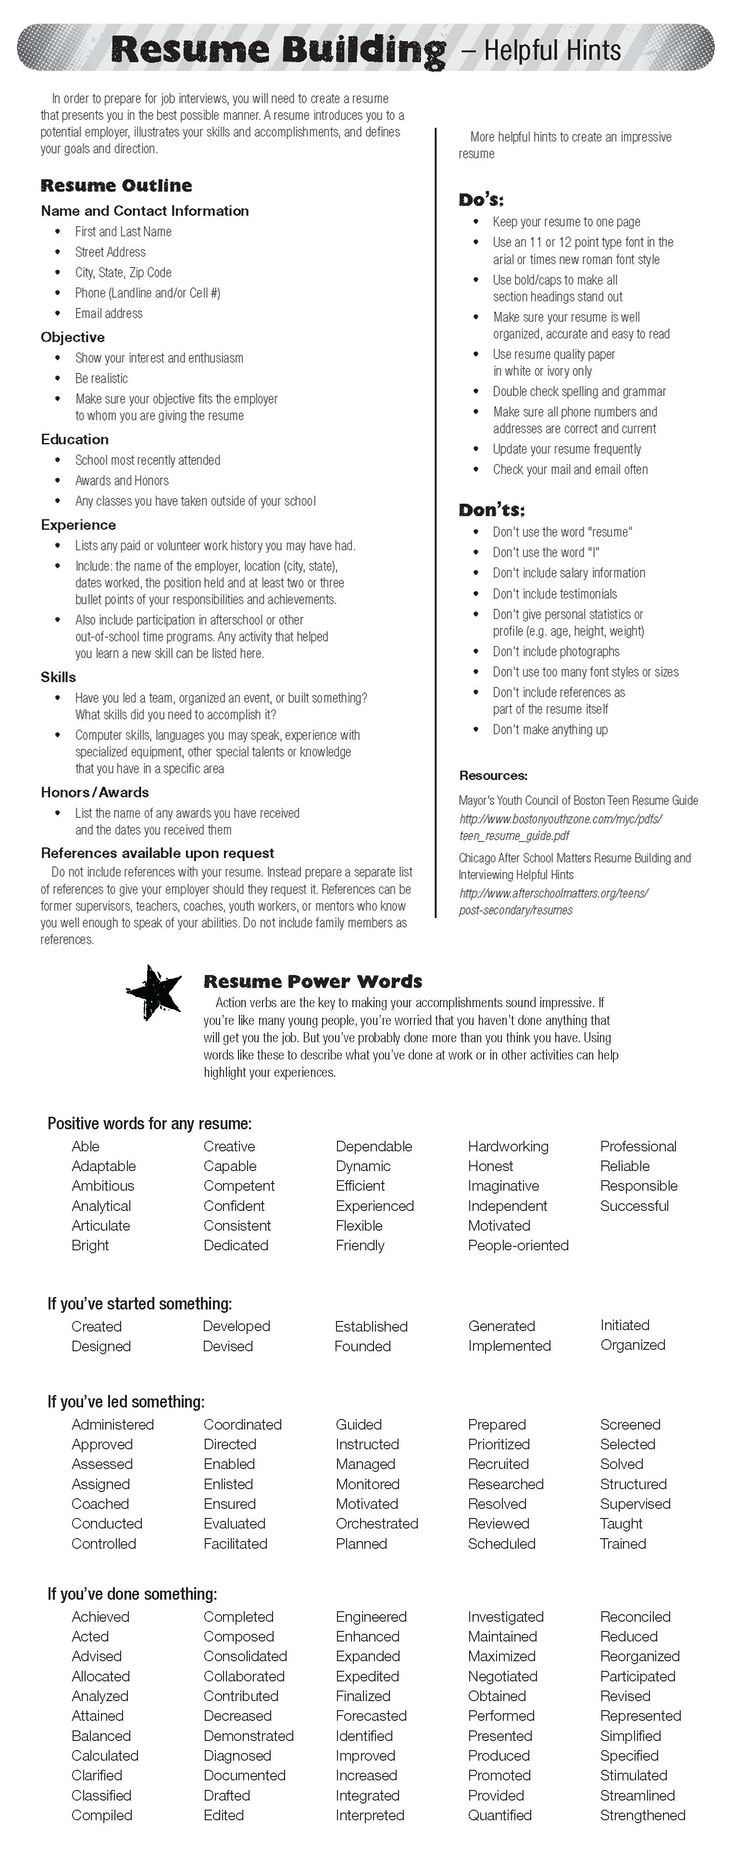 Opposenewapstandardsus  Marvellous  Ideas About Resume On Pinterest  Cv Format Resume  With Exquisite Check Out Todays Resume Building Tips Resume Resumepowerwords With Attractive Interests On Resume Also Professional Resume Service In Addition Resume For Teachers And Customer Service Skills For Resume As Well As Quick Resume Additionally Cosmetologist Resume From Pinterestcom With Opposenewapstandardsus  Exquisite  Ideas About Resume On Pinterest  Cv Format Resume  With Attractive Check Out Todays Resume Building Tips Resume Resumepowerwords And Marvellous Interests On Resume Also Professional Resume Service In Addition Resume For Teachers From Pinterestcom